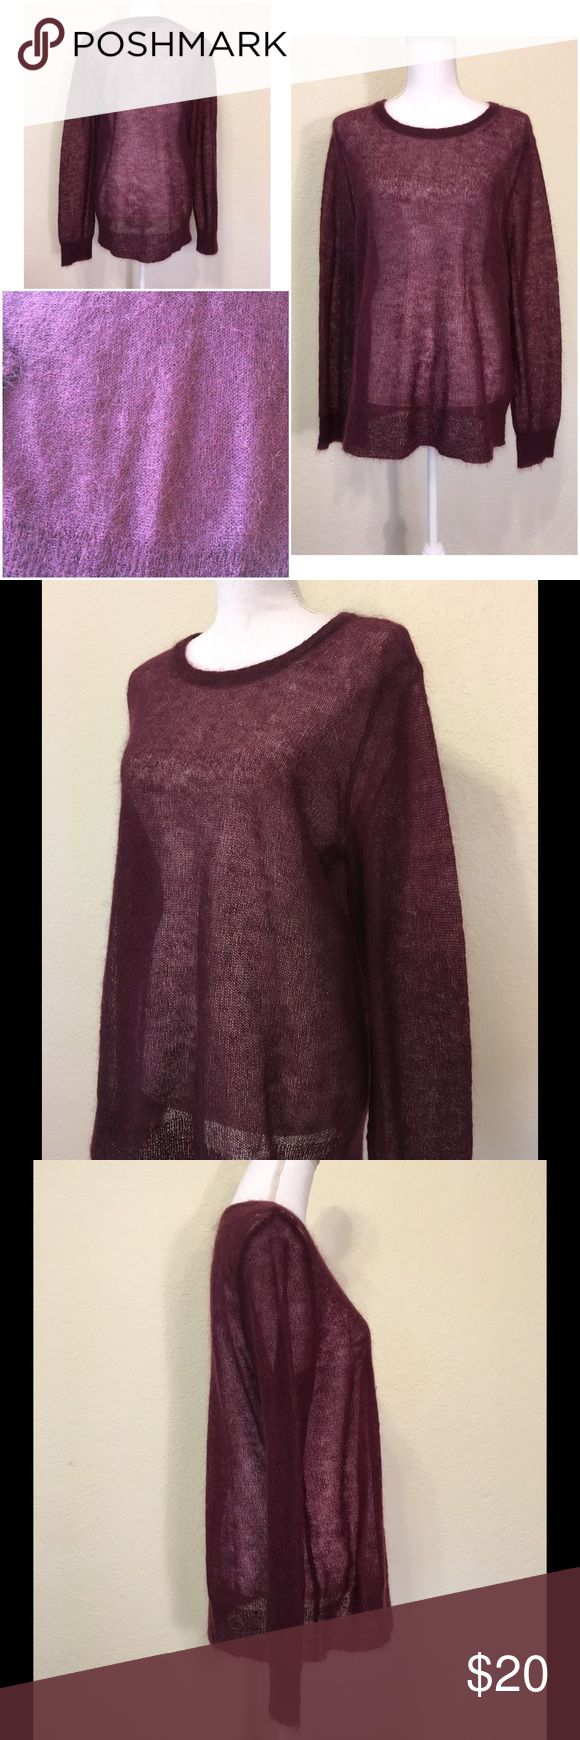 """NWOT J. Jill Maroon Mohair Blend Sweater Size L.  Super soft and fuzzy mohair blend sweater.  Sheer and lightweight.  New - no pulls or pilling.  Length from shoulder to hem: 27"""".  Laid flat measurements – Bust: 42"""", Waist: 42, Hips: 44"""".  Sleeve length: 26"""".  Cuff width: 4"""".  61% mohair, 31% nylon, 8% wool.  Dry clean.    Love it but not the price - I'm open to (reasonable) offers or consider bundling 2 or more items for an additional 15% off and combined shipping!    Check out my reviews…"""